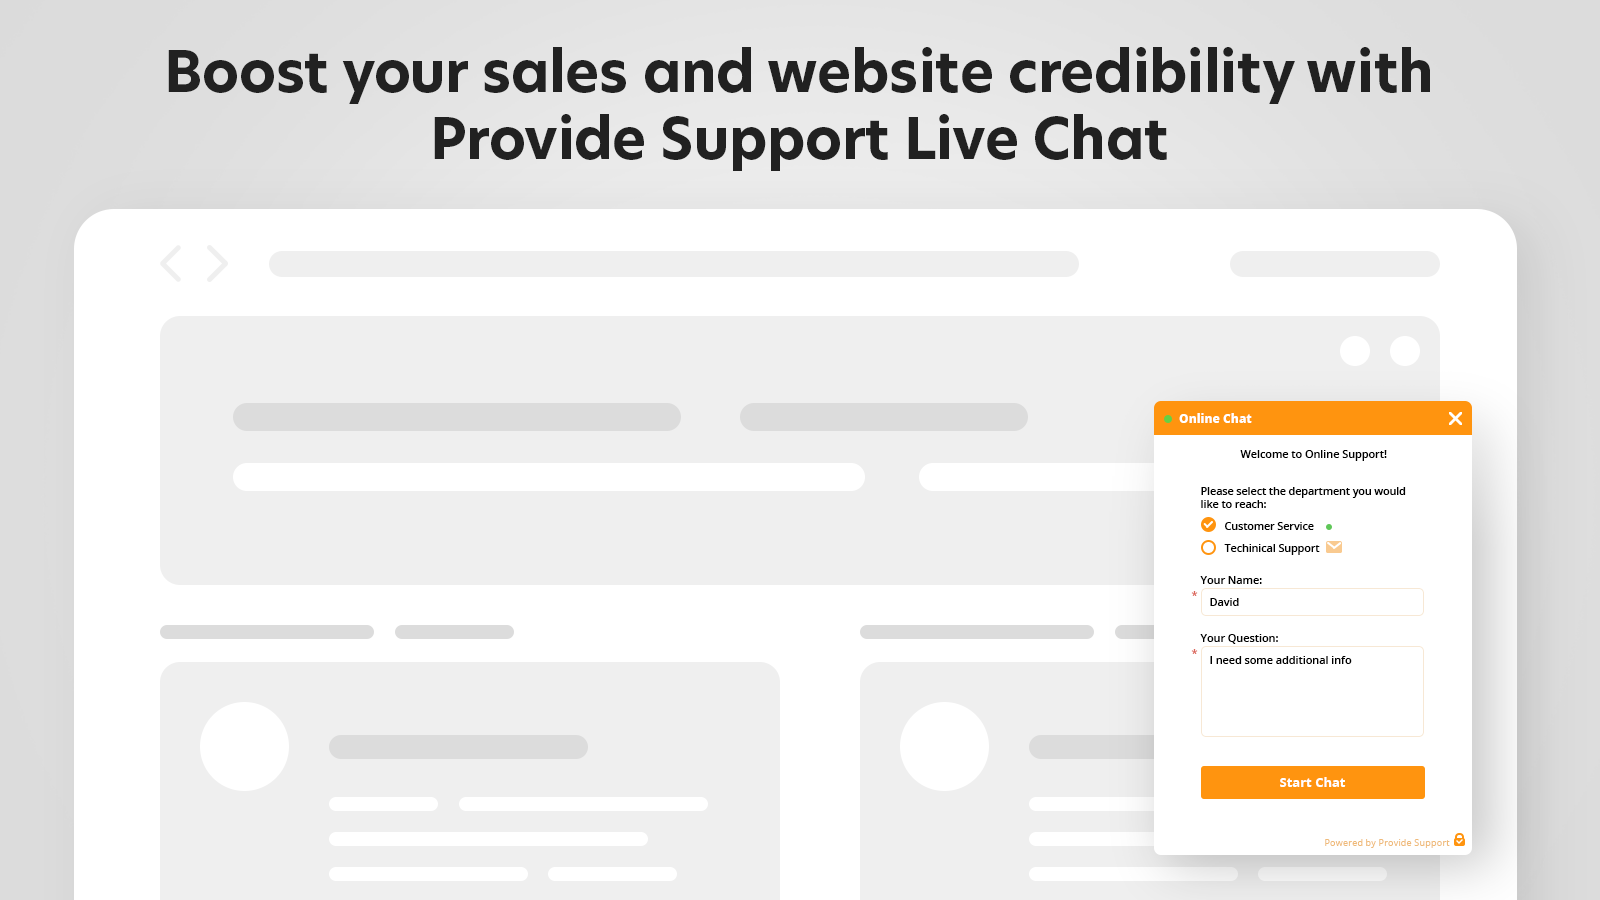 Improve your customer support with Provide Support Live Chat